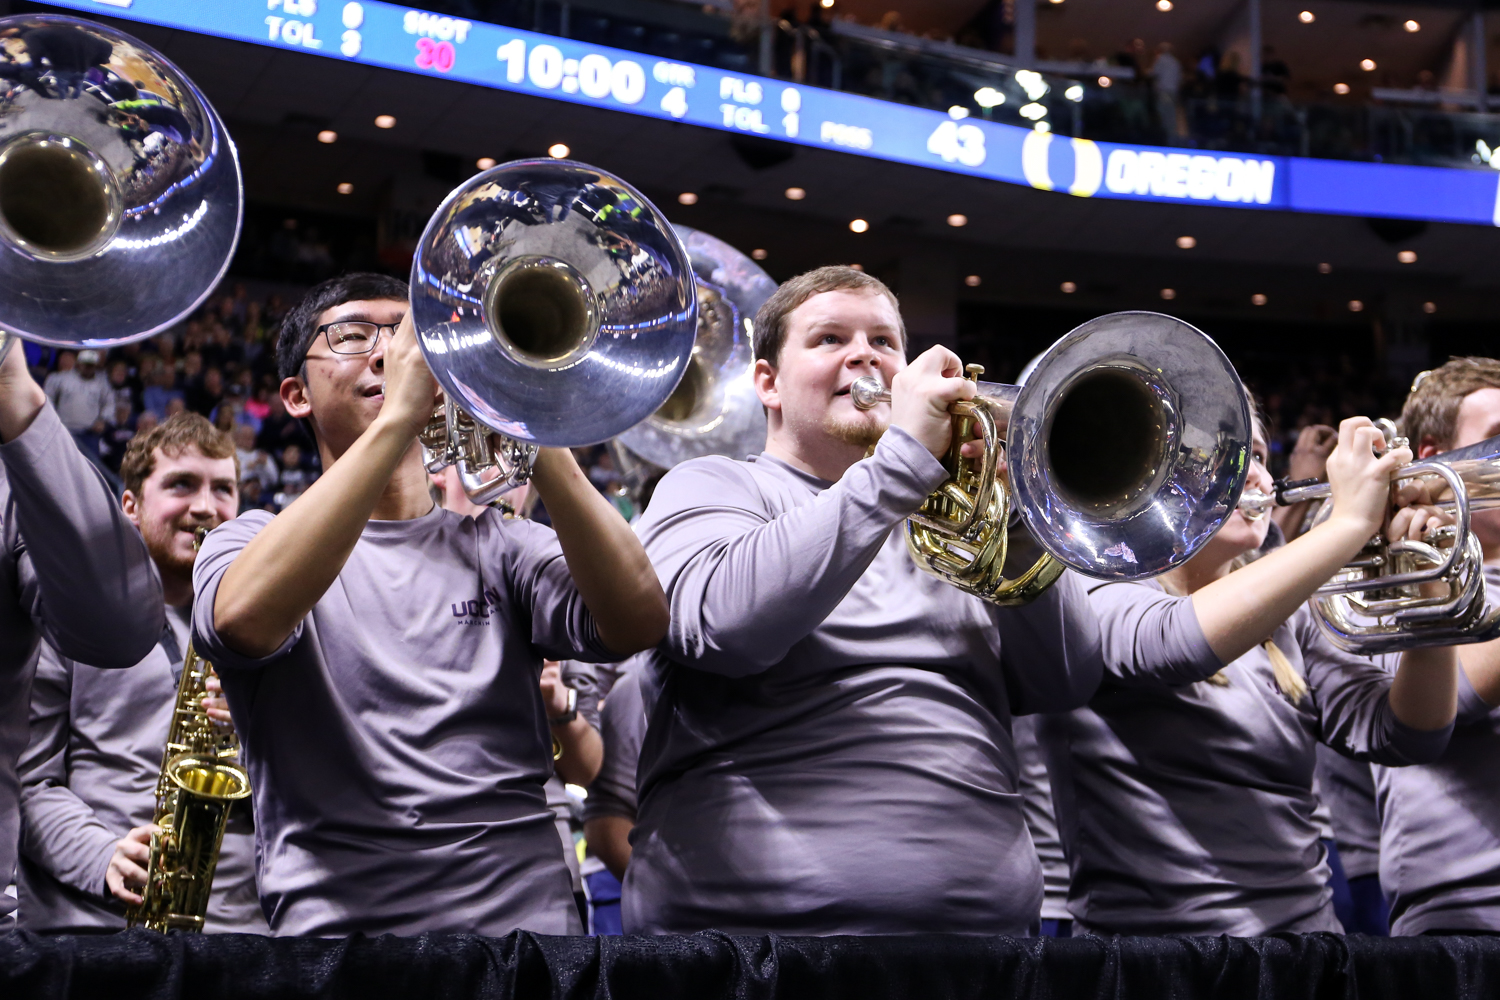 Members of the UConn pep band perform during a timeout.